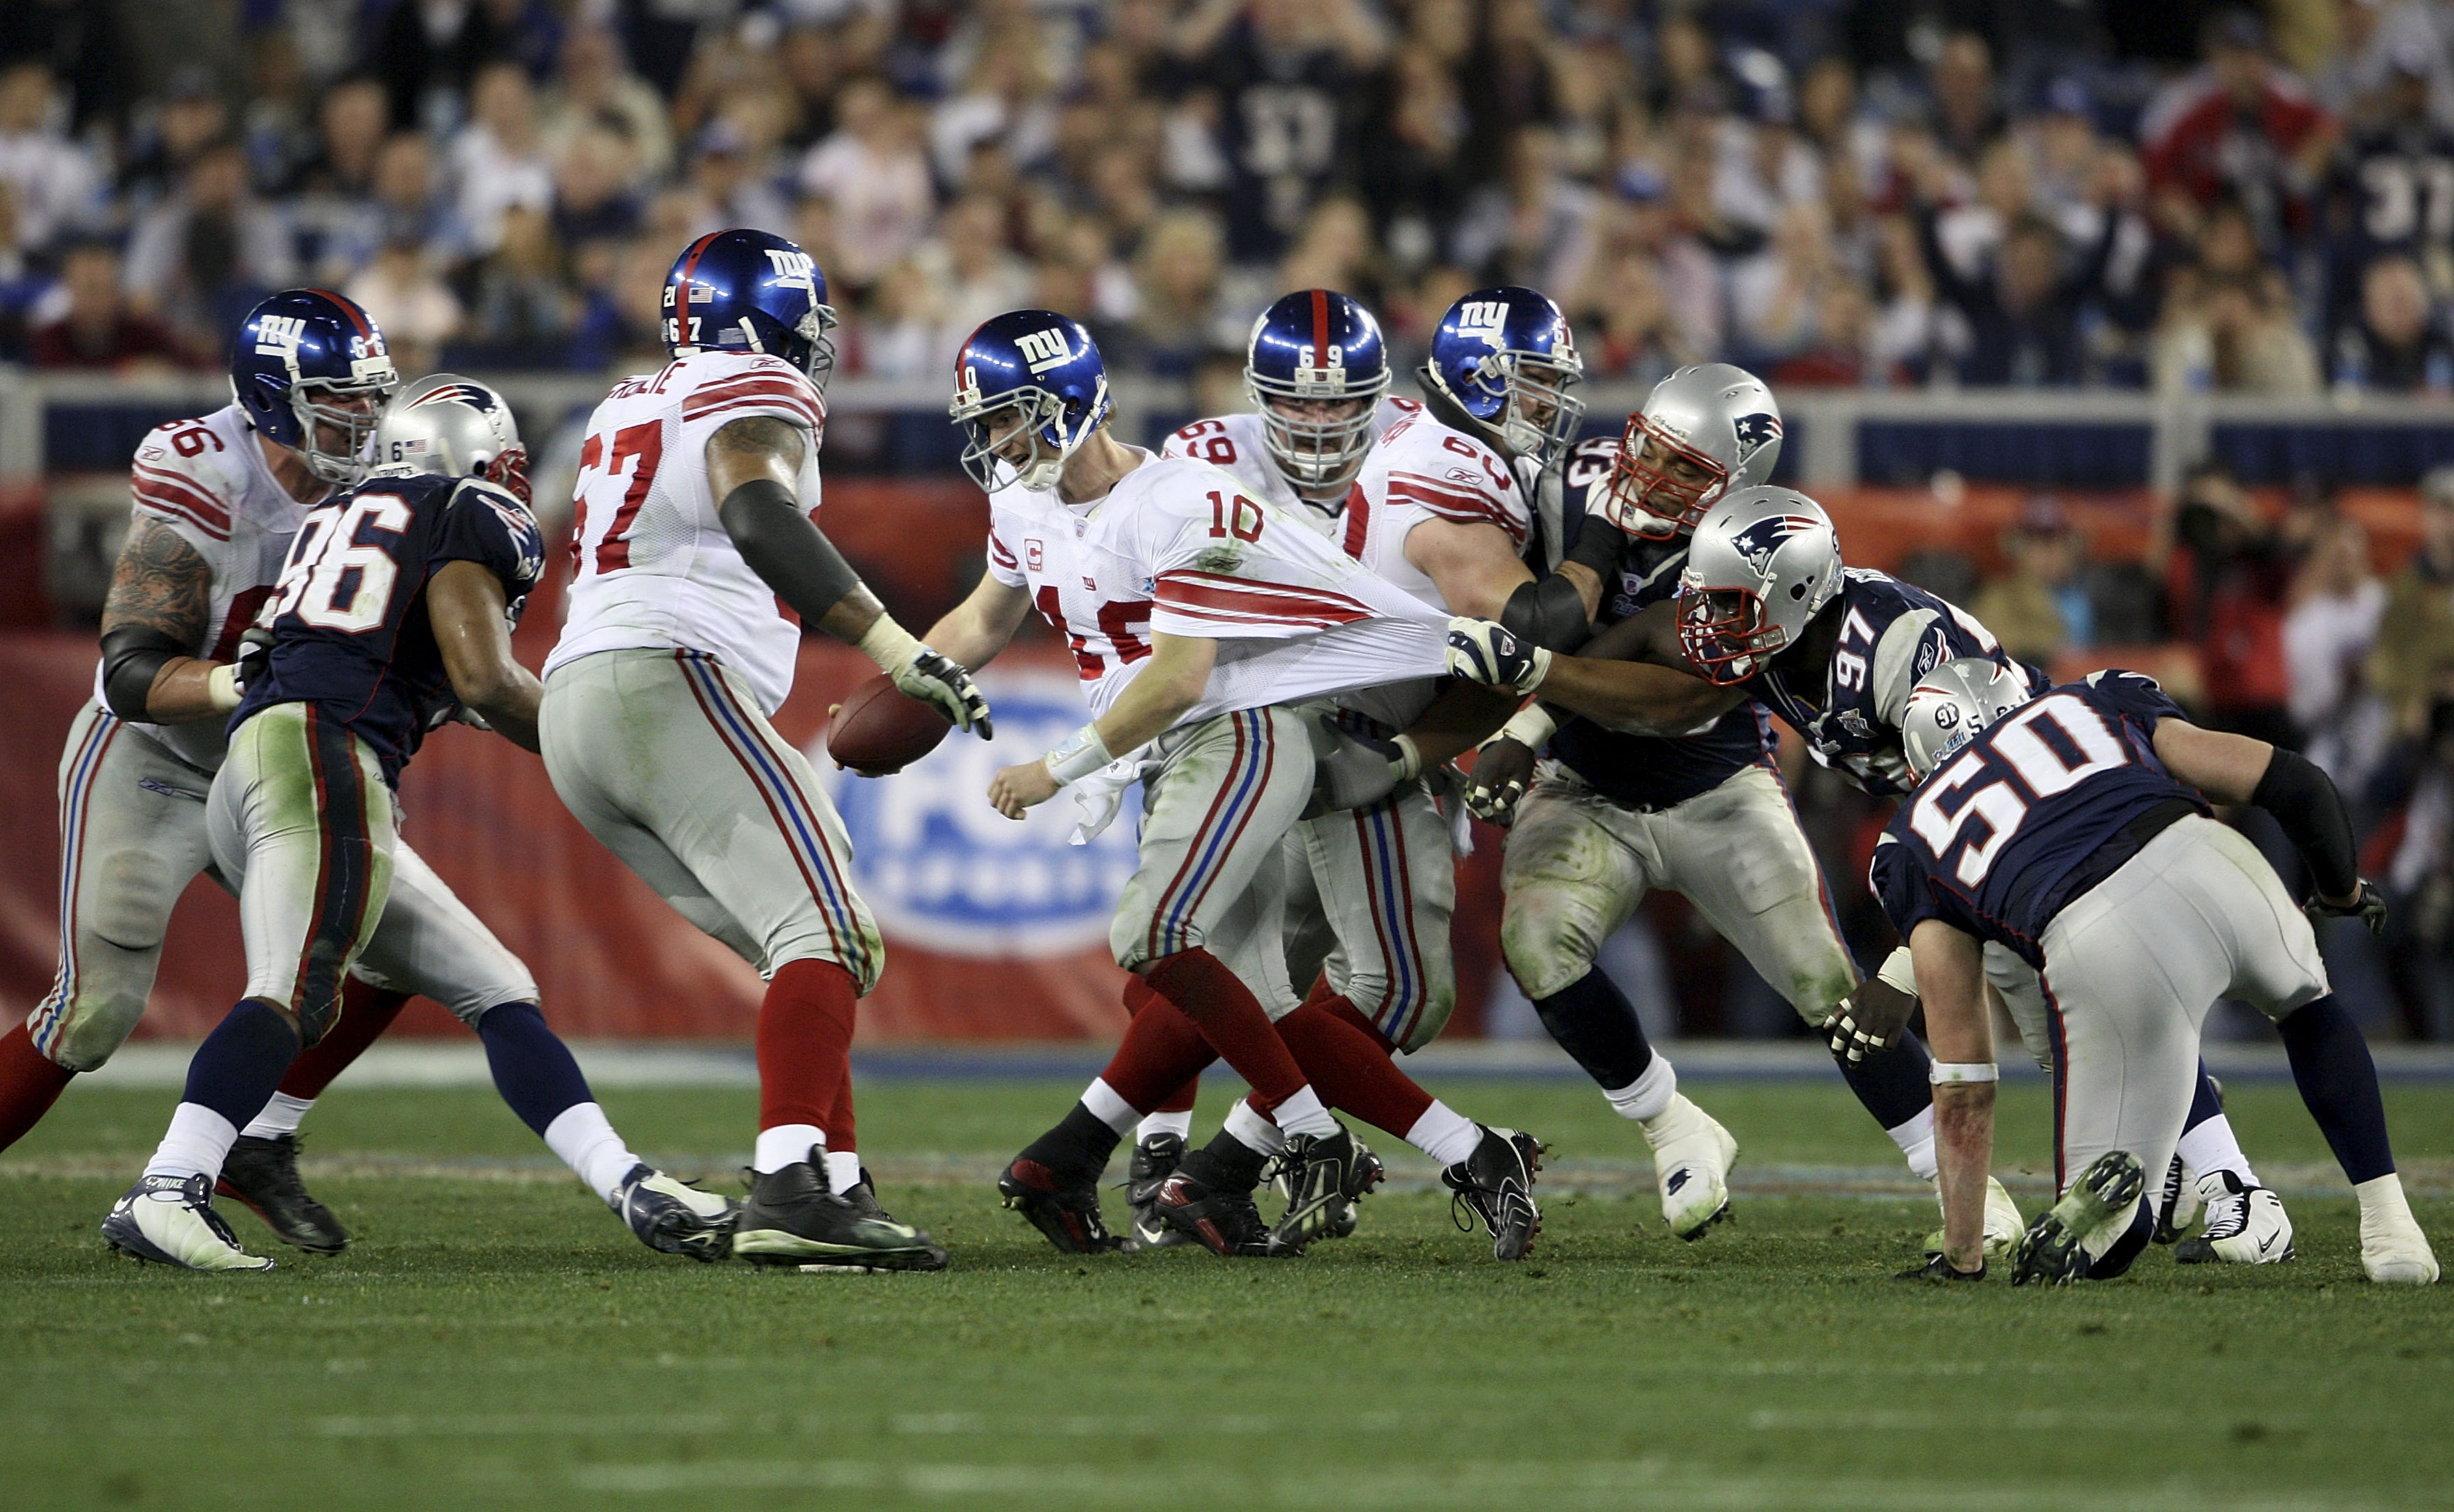 Richard Seymour says Giants won Super Bowl XLII because he was held